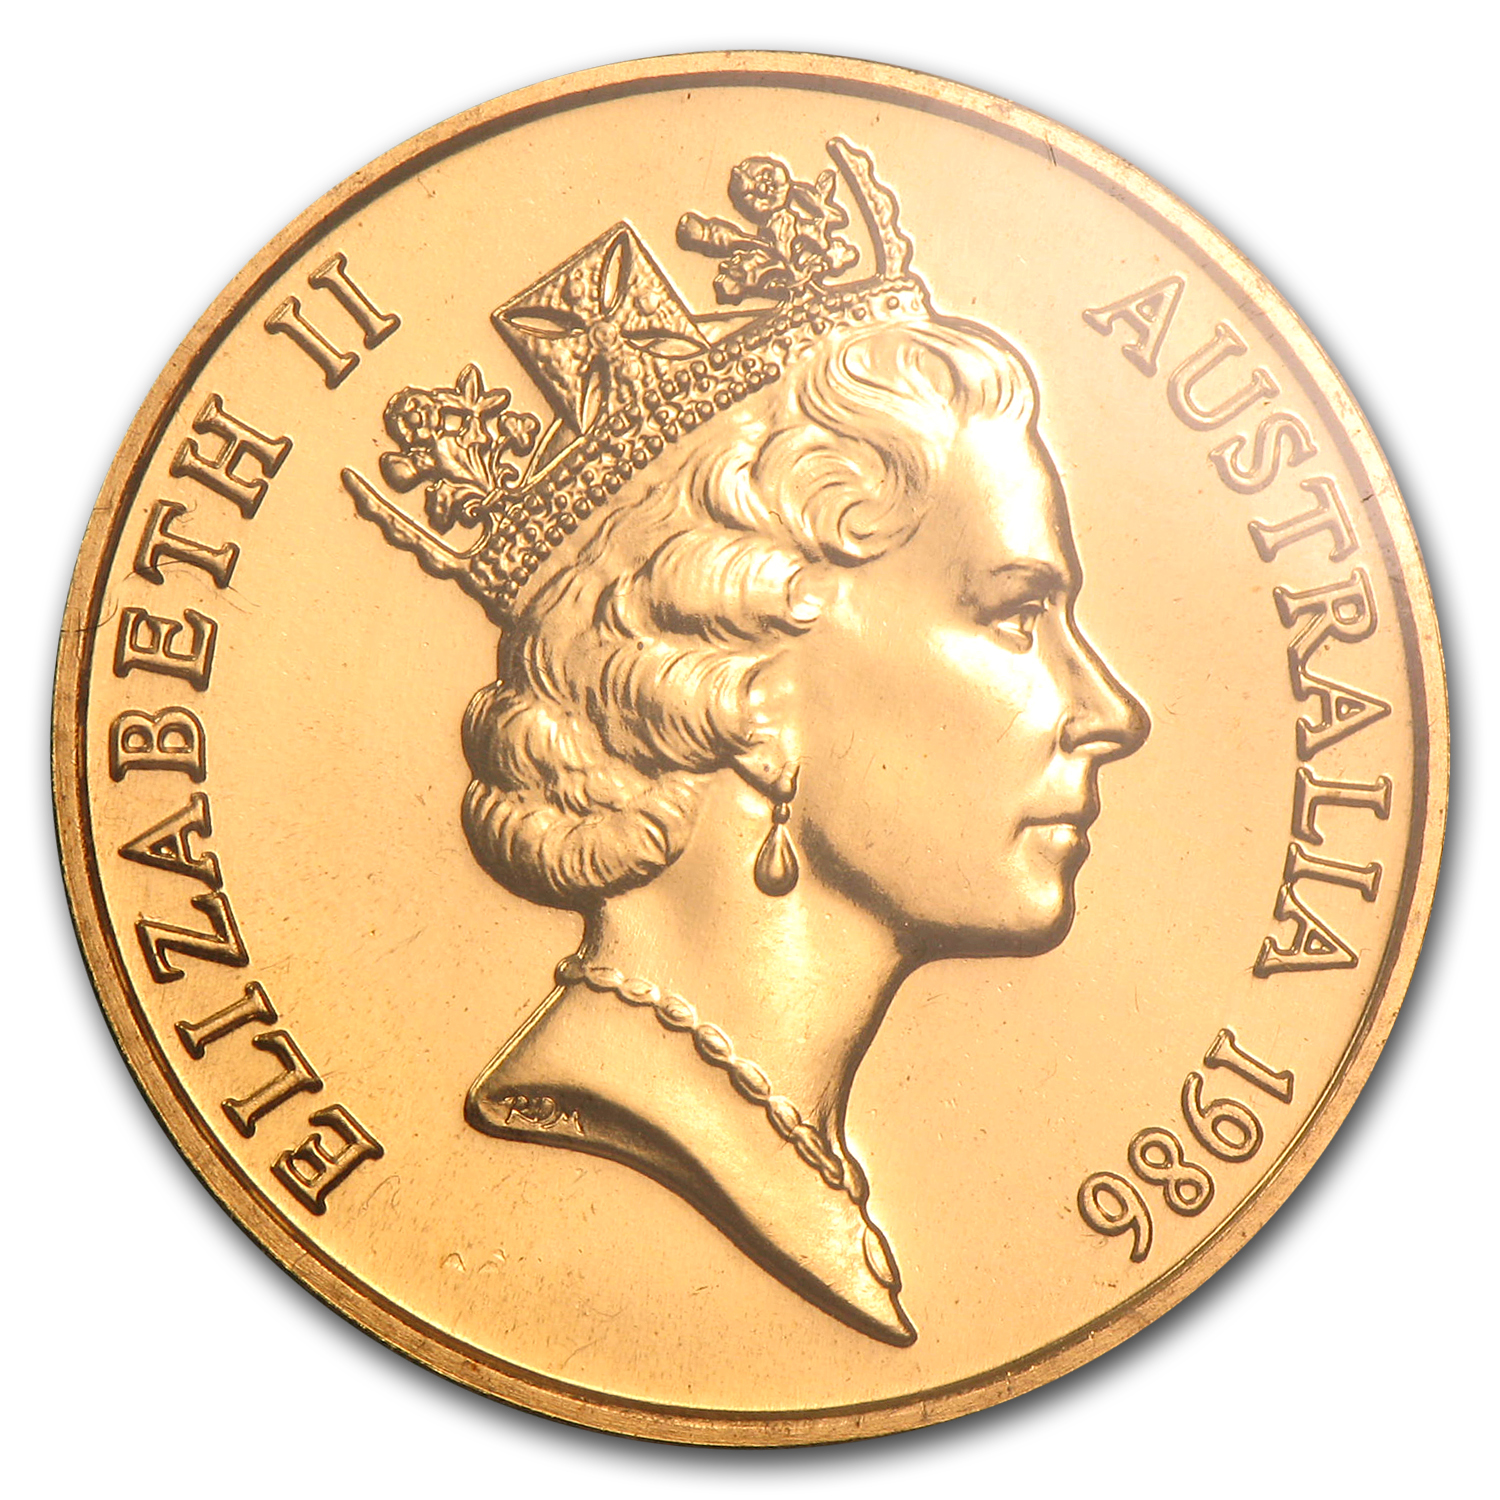 Australia 1986 200 Dollars Gold Uncirculated Coin